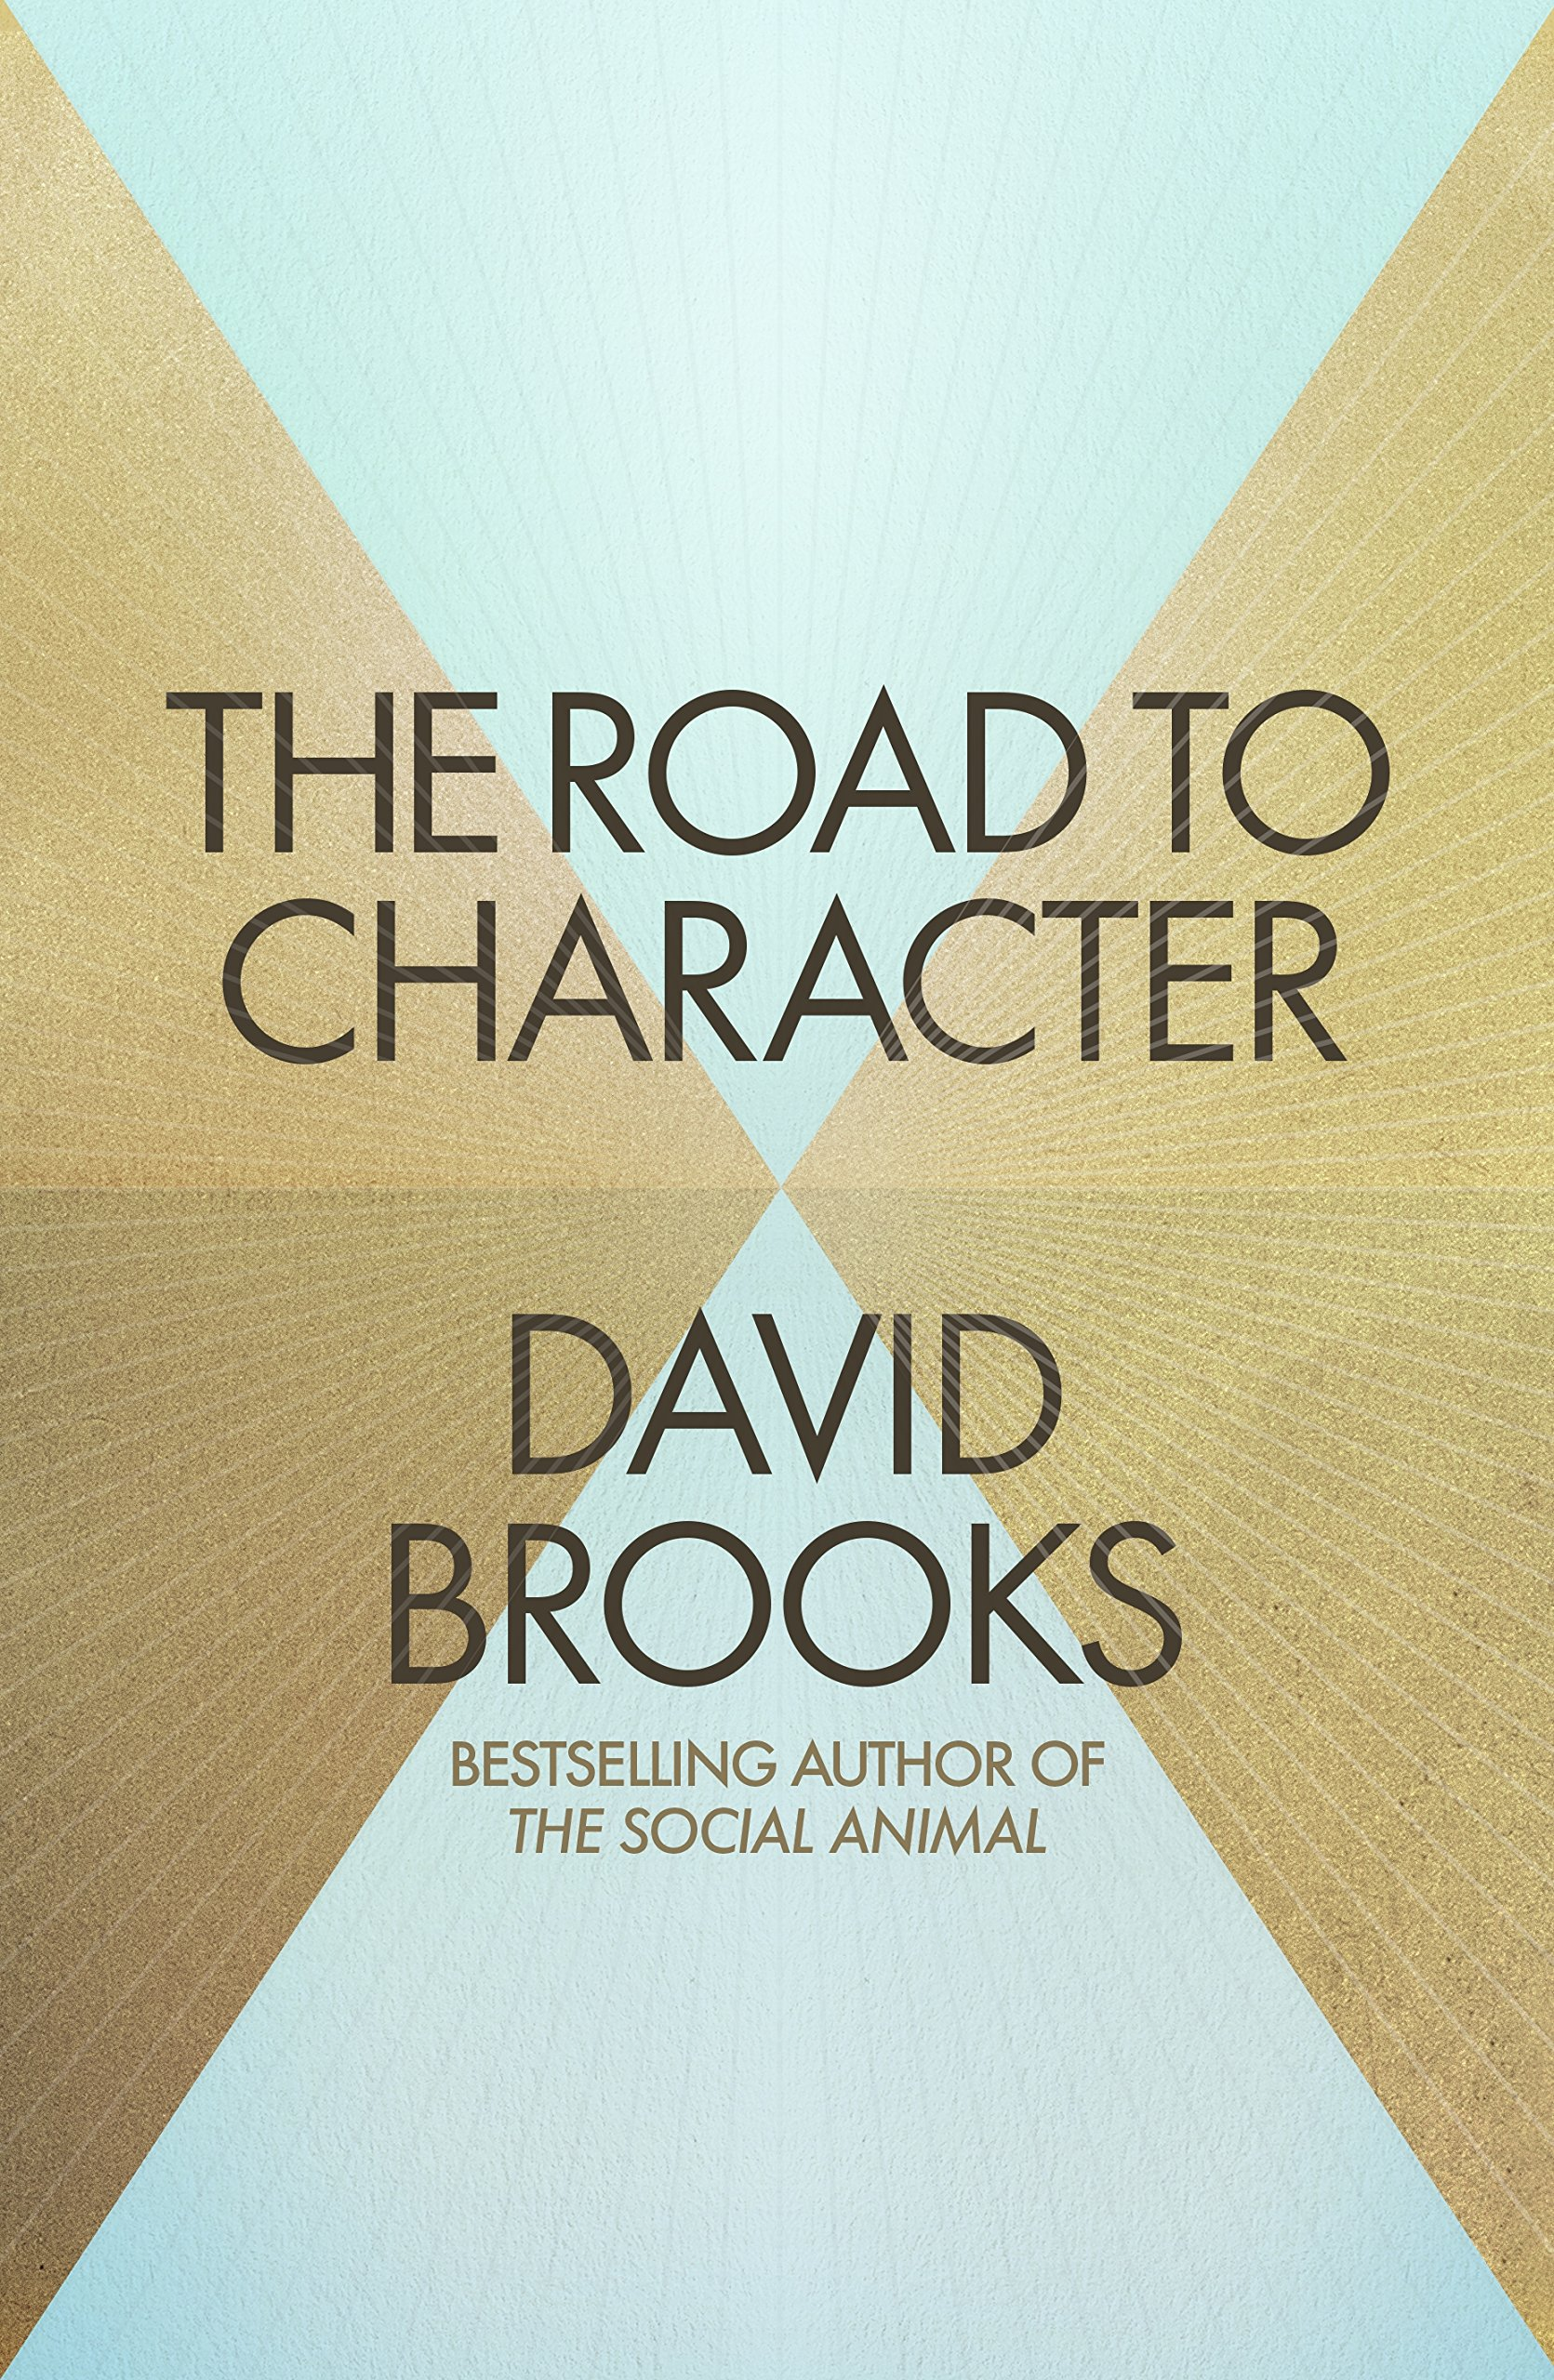 the road to character co uk david brooks 9780241186725 the road to character co uk david brooks 9780241186725 books